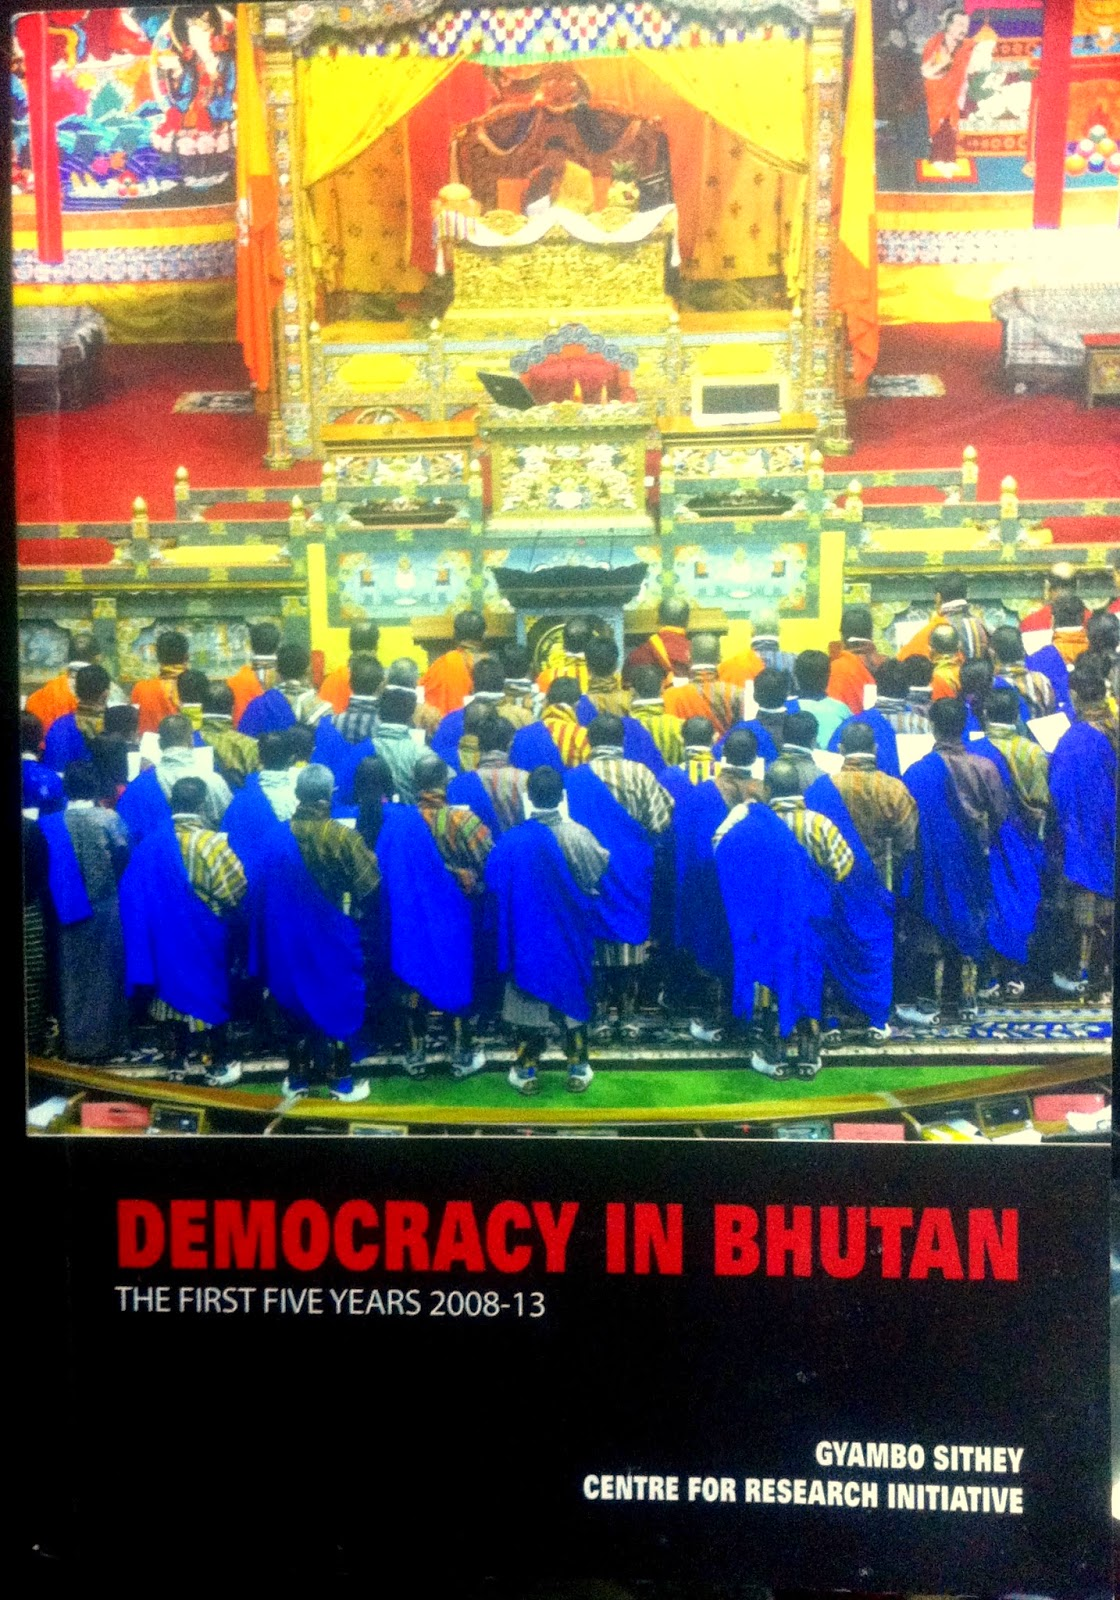 democracy in bhutan Democracy is new to the small kingdom of bhutan introduced in 2008, the small kingdom in the himalayas has in 2013 successfully completed its second round of multiparty elections.